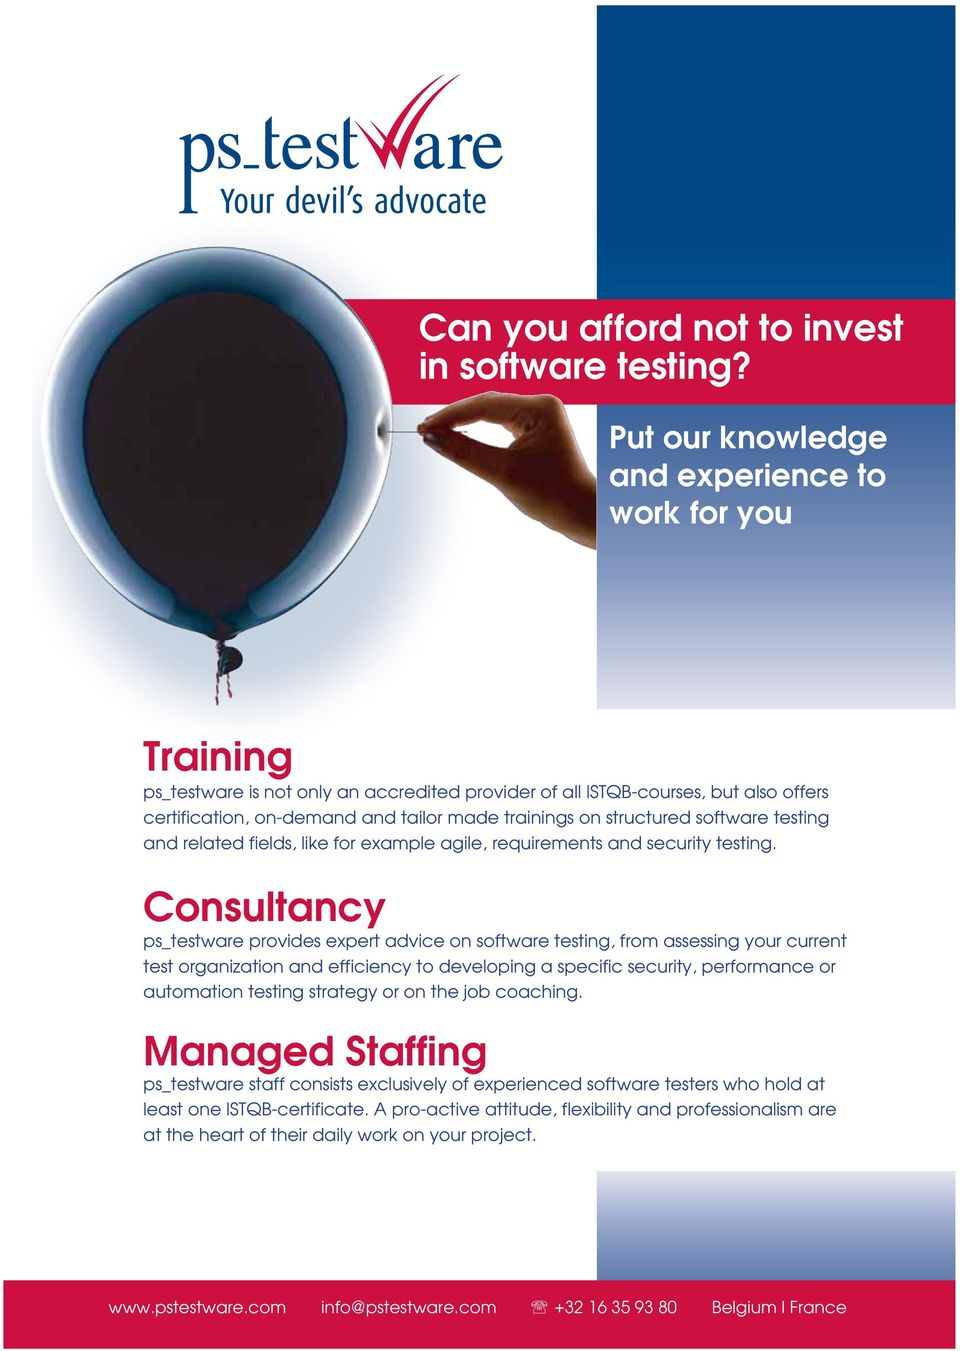 structured software testing and related fields, like for example agile, requirements and security testing.